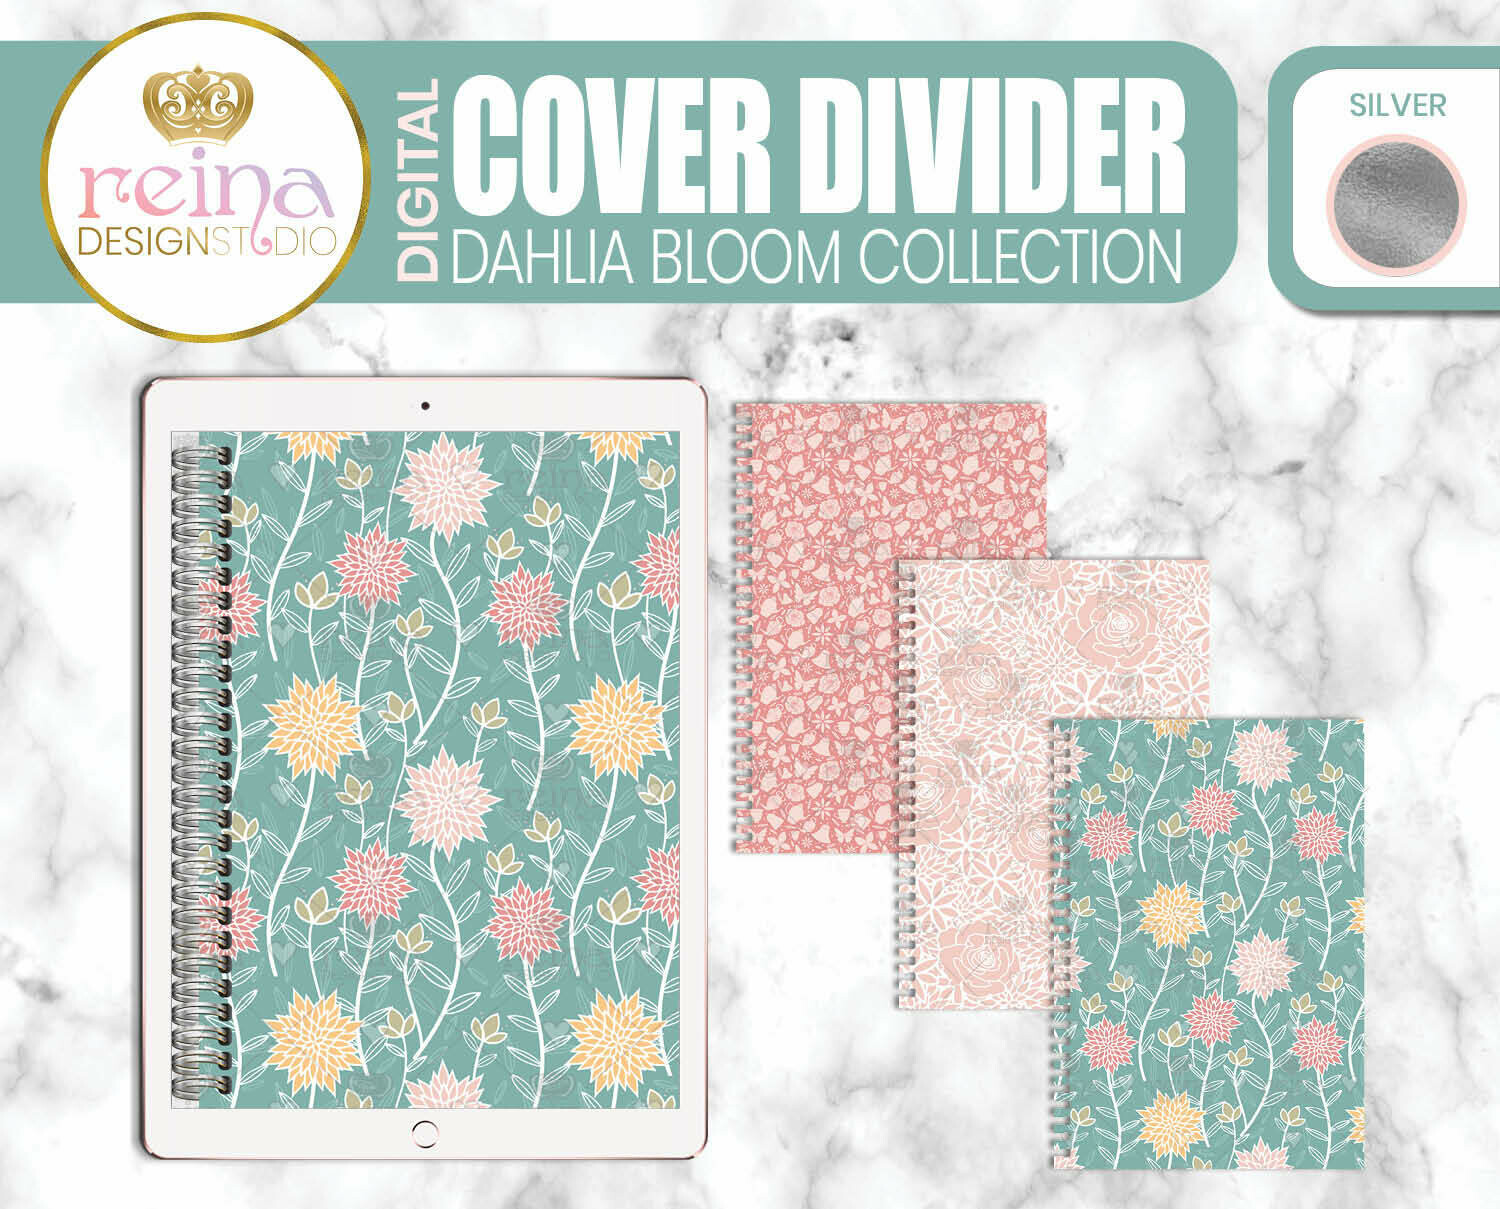 Interchangeable Digital Planner Cover and Dividers | Dahlia Bloom, Silver